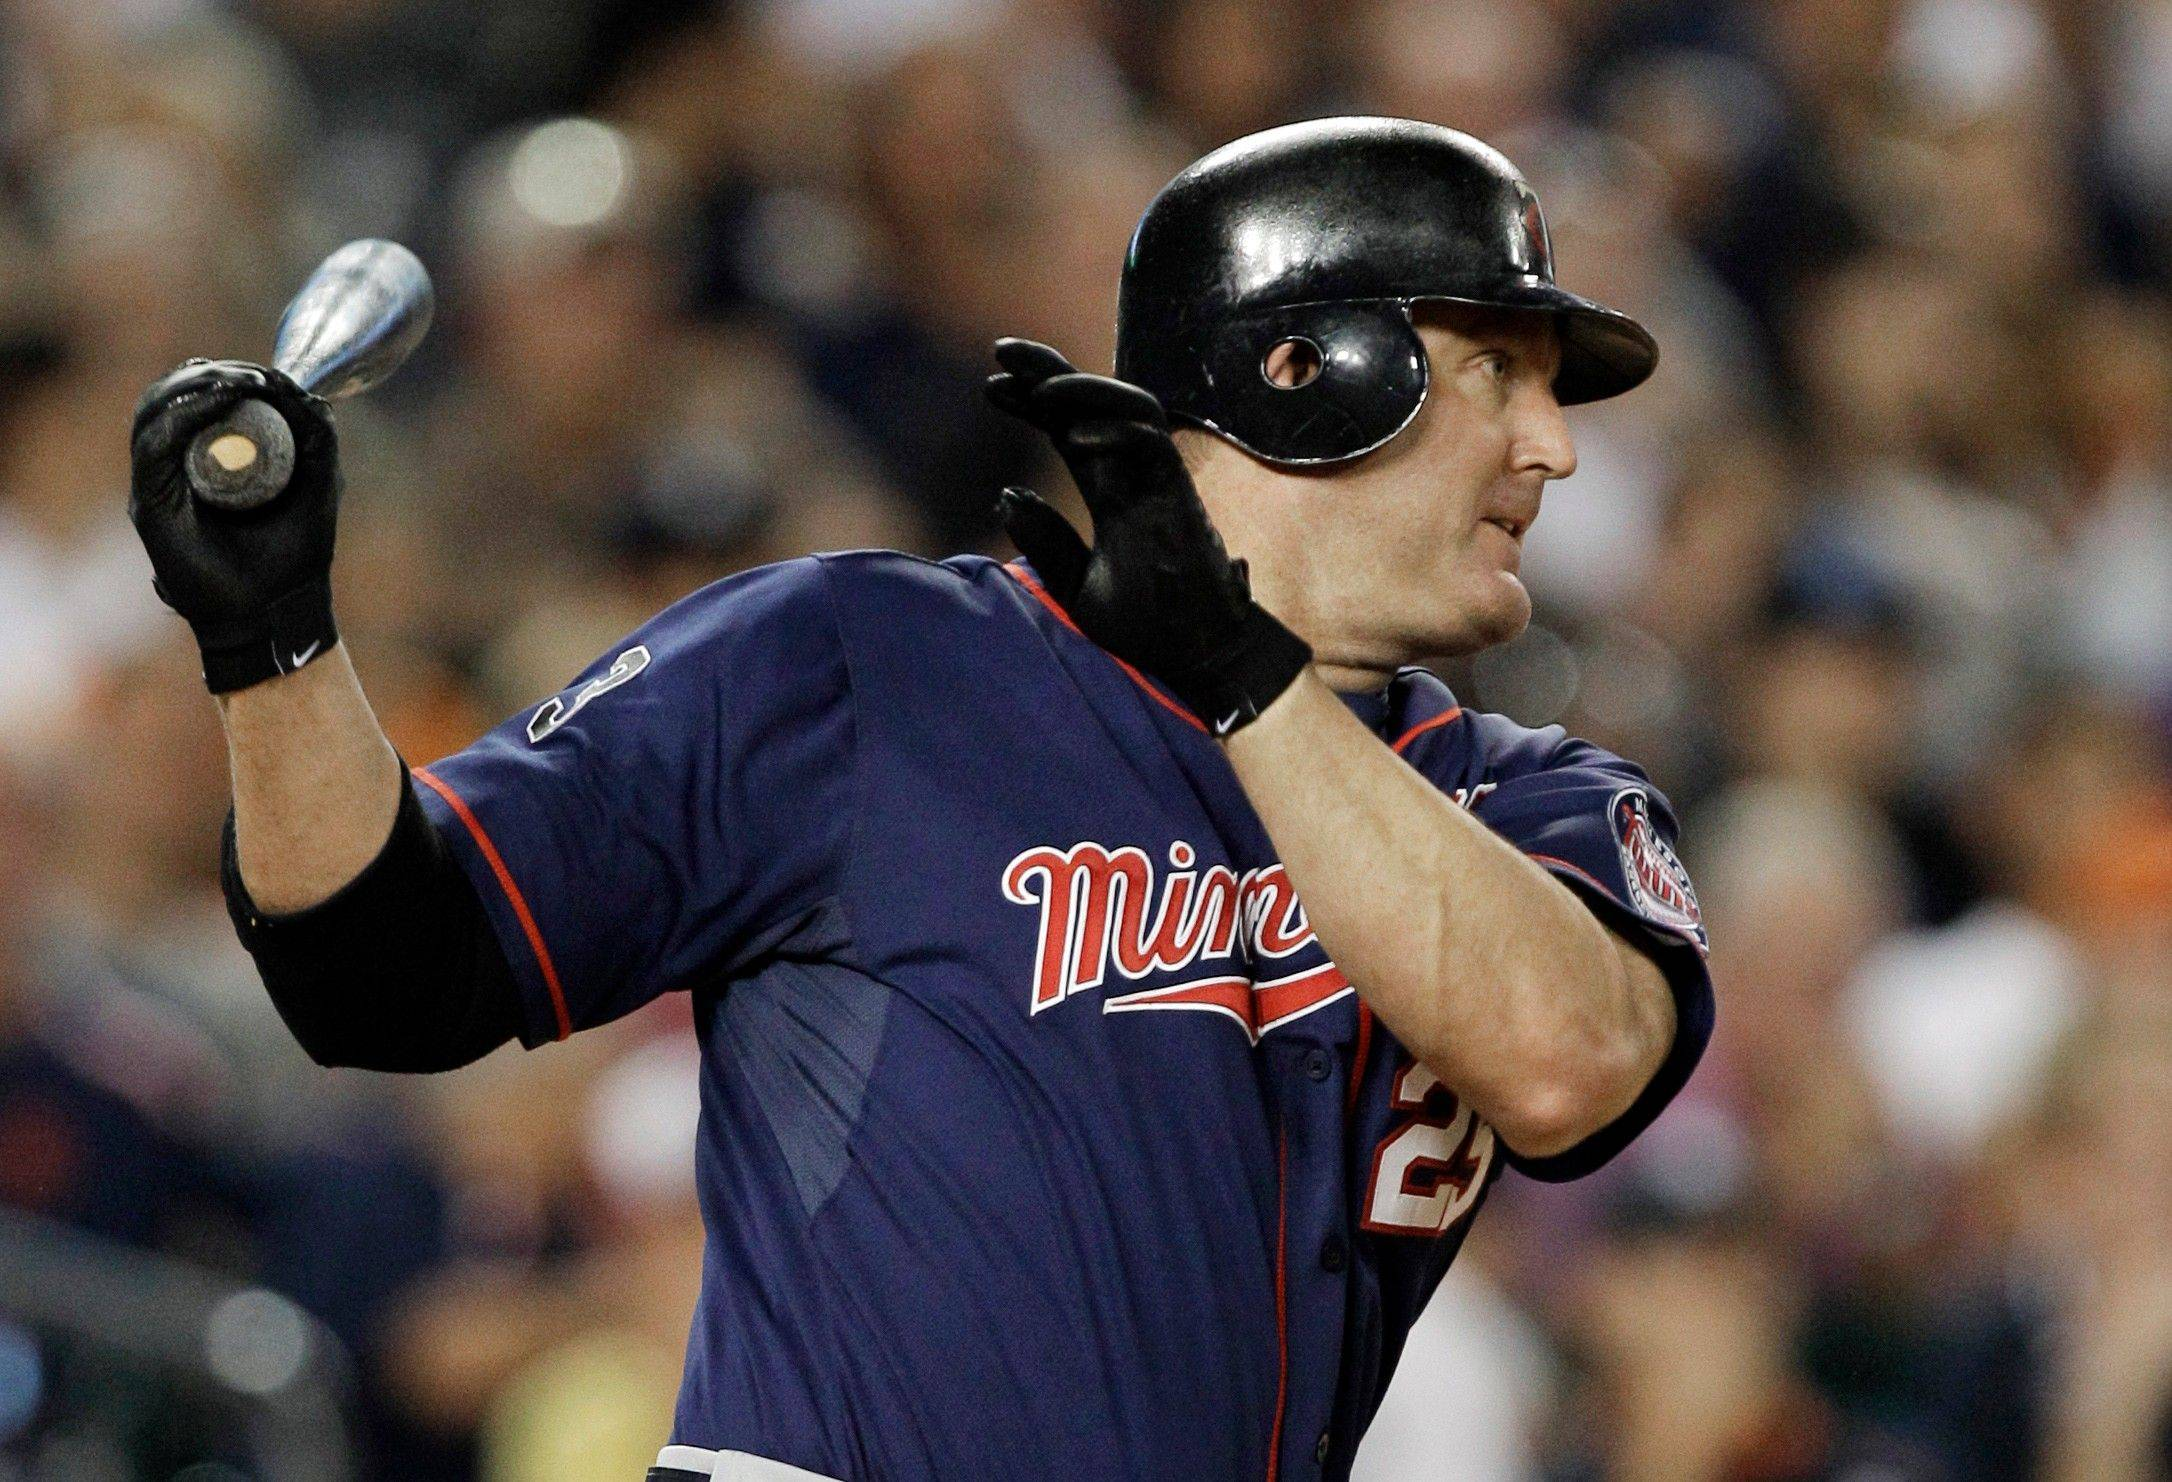 Could the White Sox really get Jim Thome back?